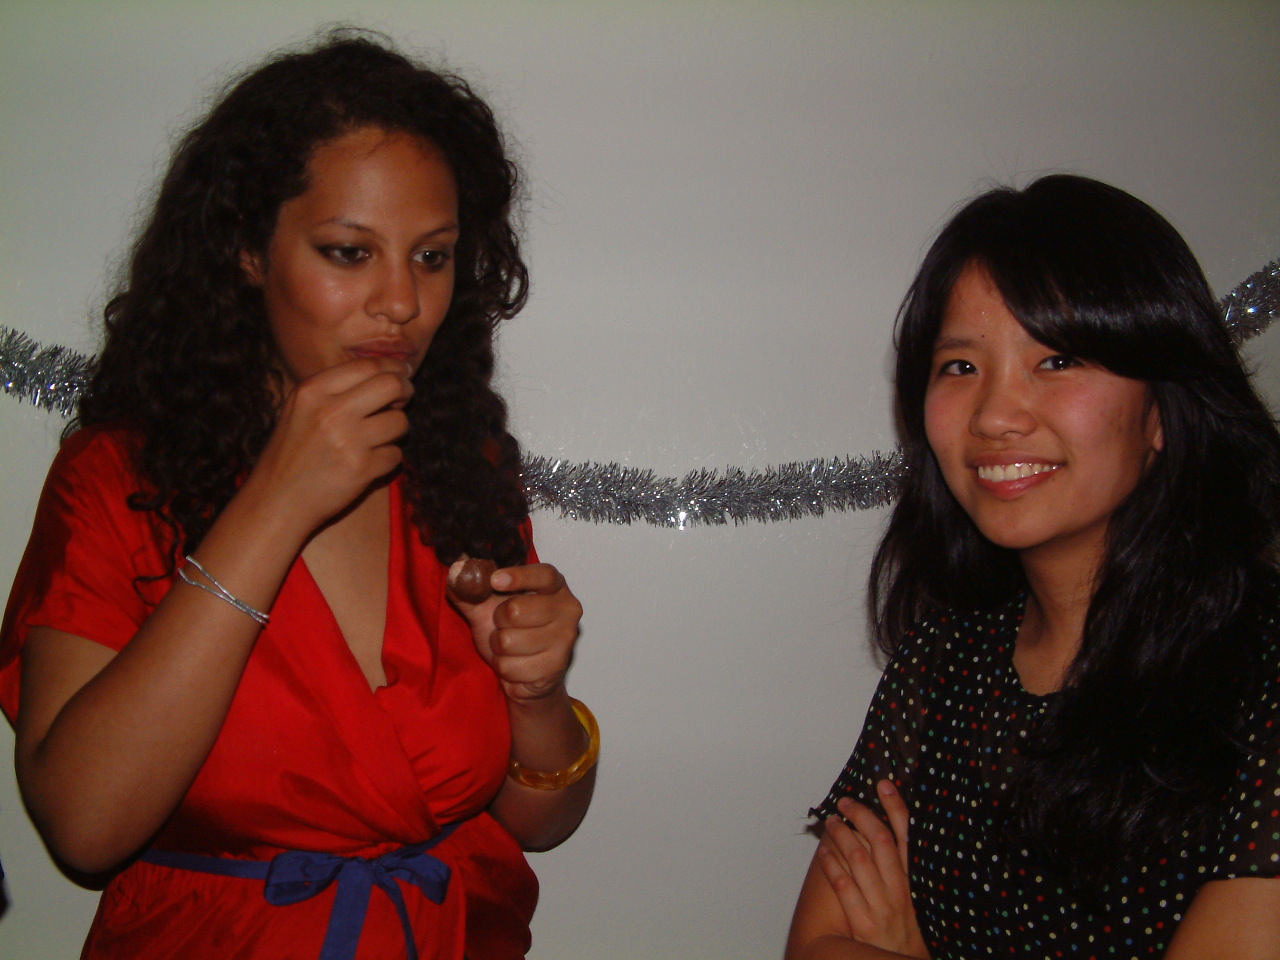 Another friend, Liz (left), and Lauren at an awkward house party, same year.